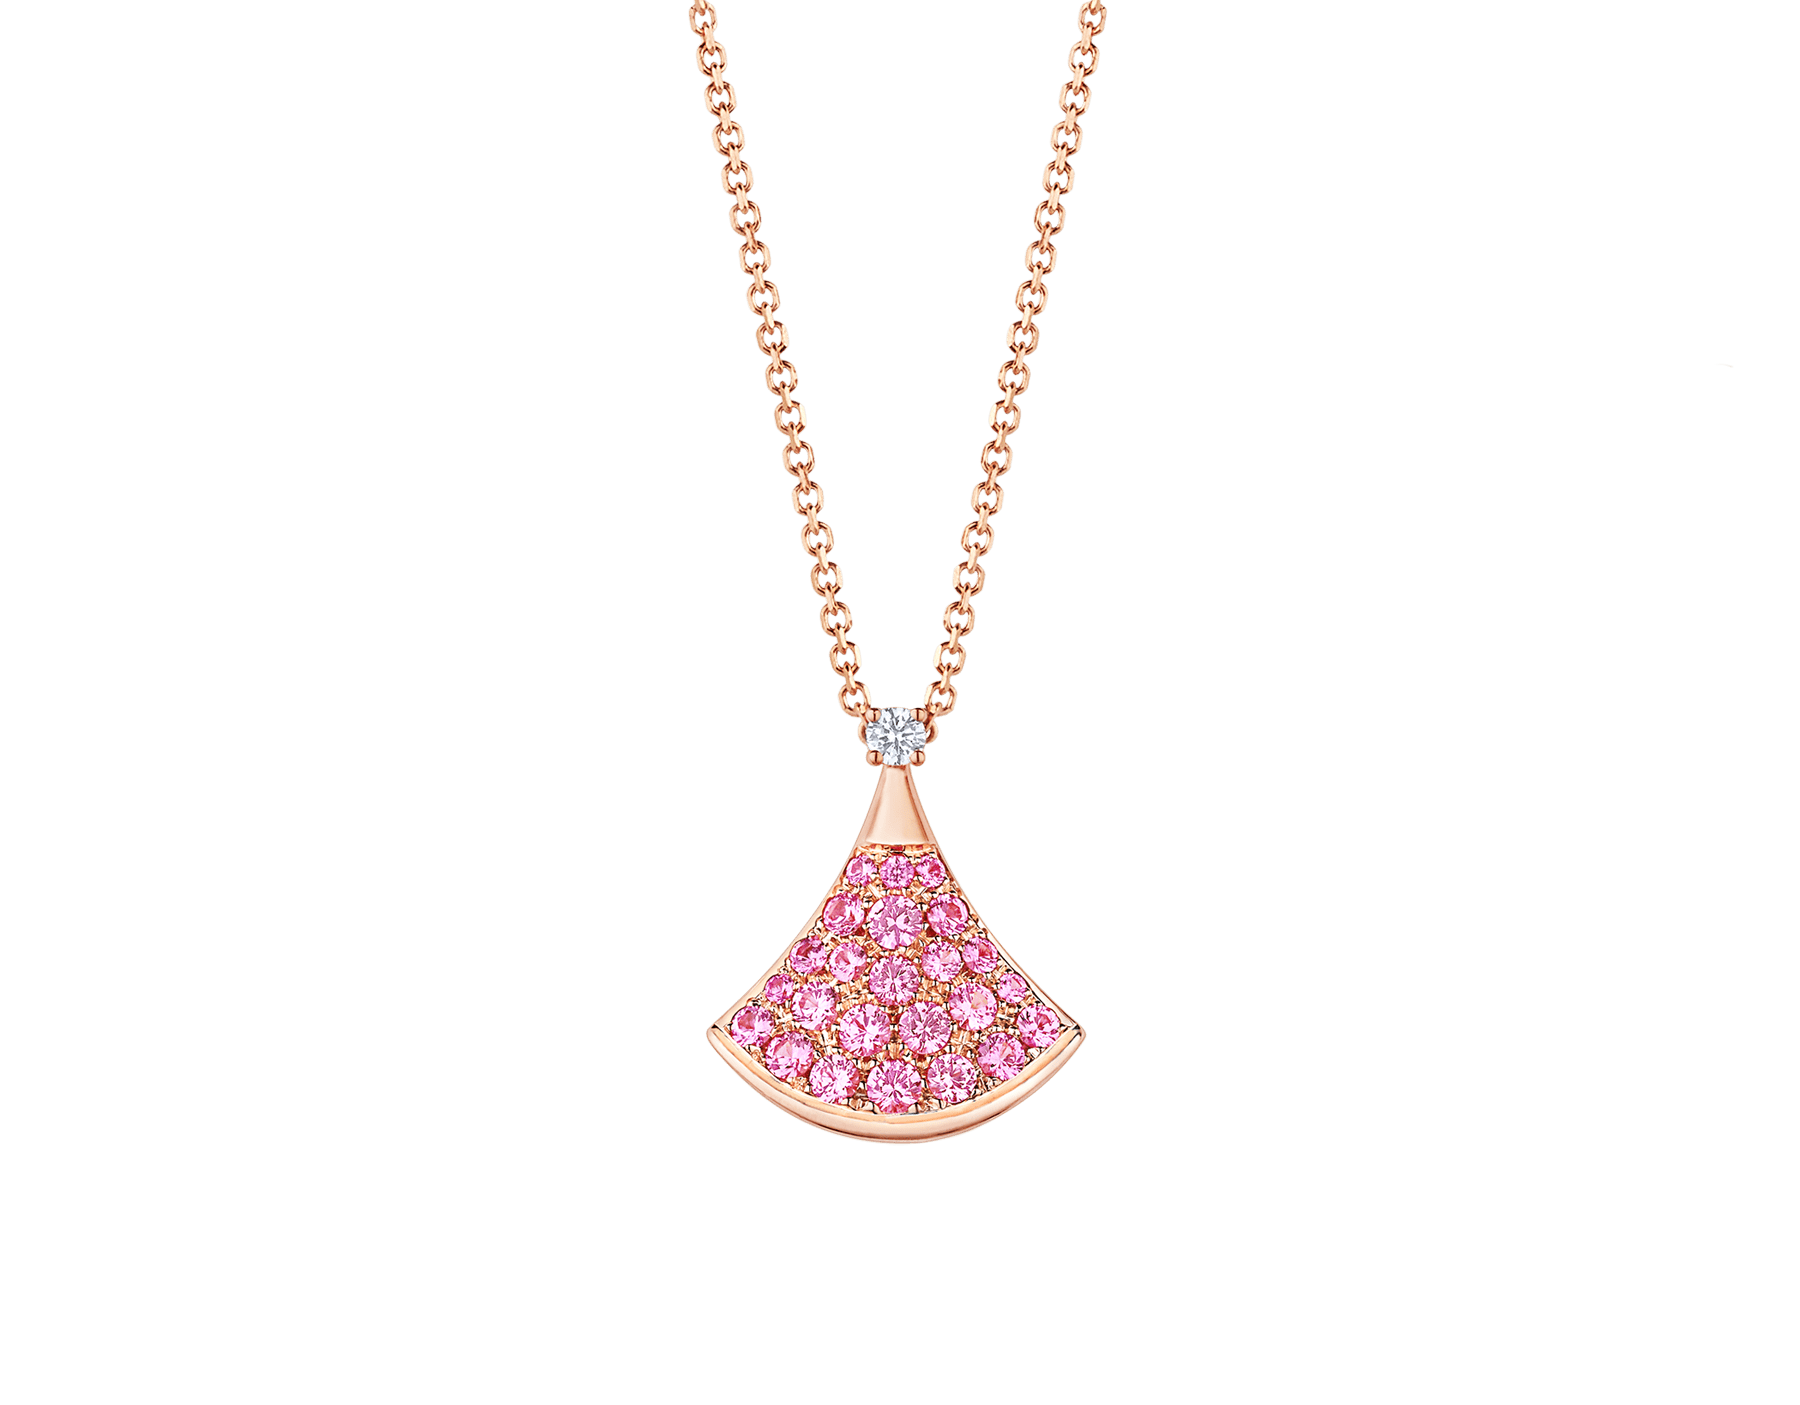 Collier DIVAS' DREAM en or rose 18 K avec pendentif en or rose 18 K serti d'un diamant (0,03 ct) et pavé saphirs roses (0,55 ct) 355889 image 1